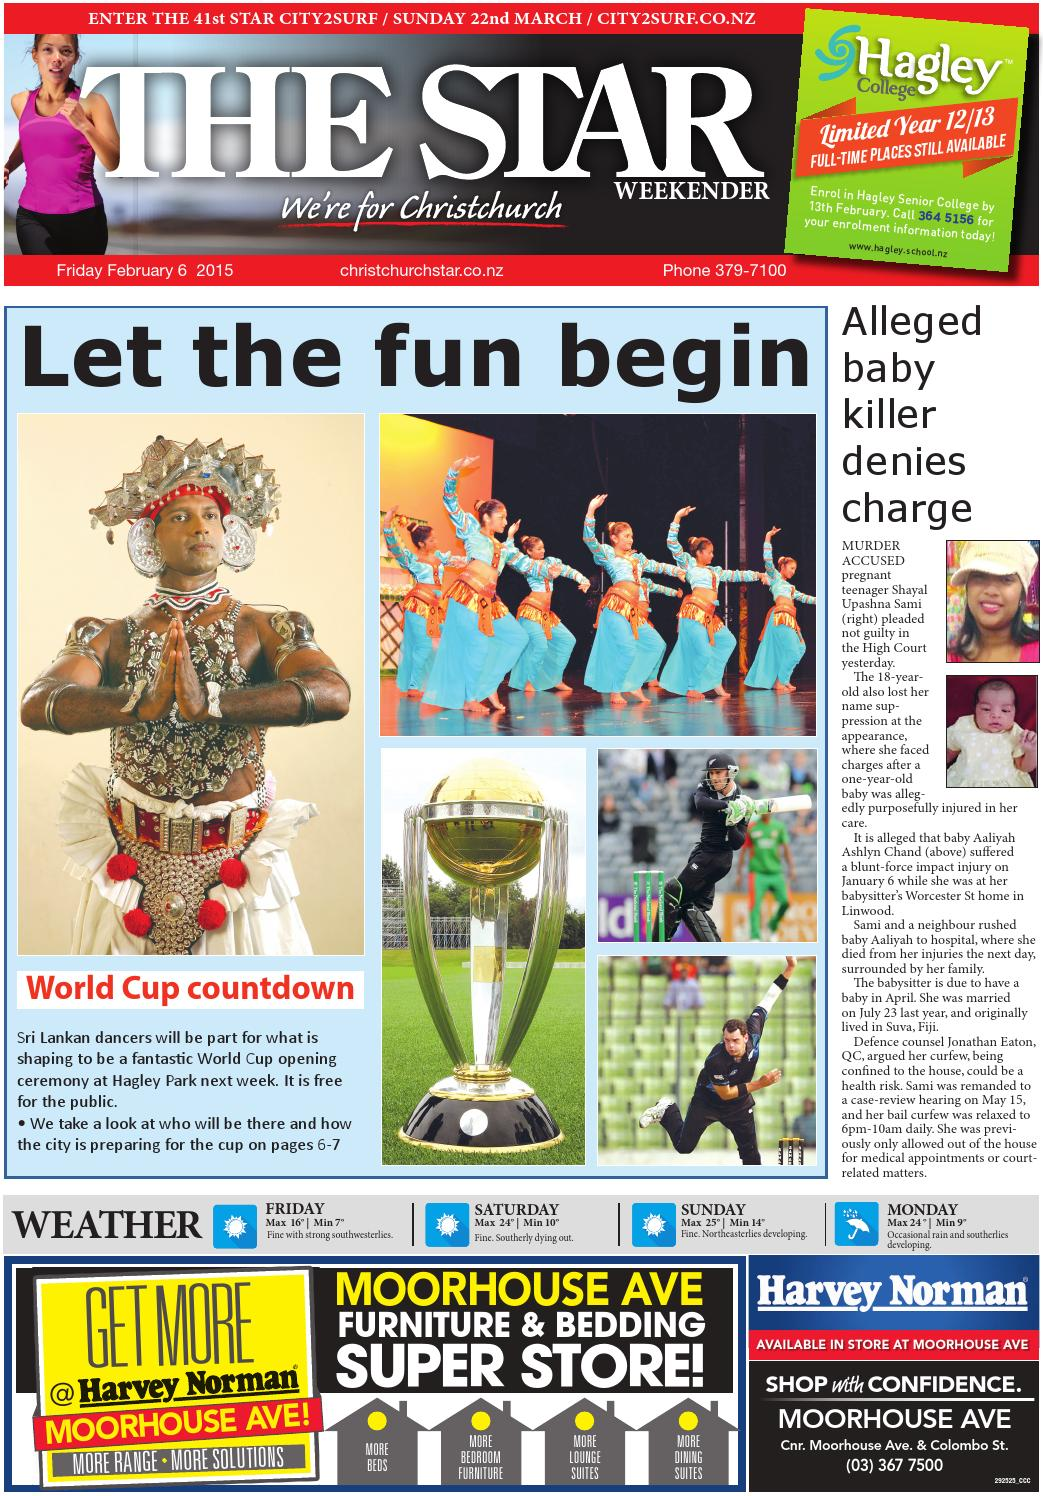 bcd6fb78bcb The Star Weekend 06-02-15 by Local Newspapers - issuu